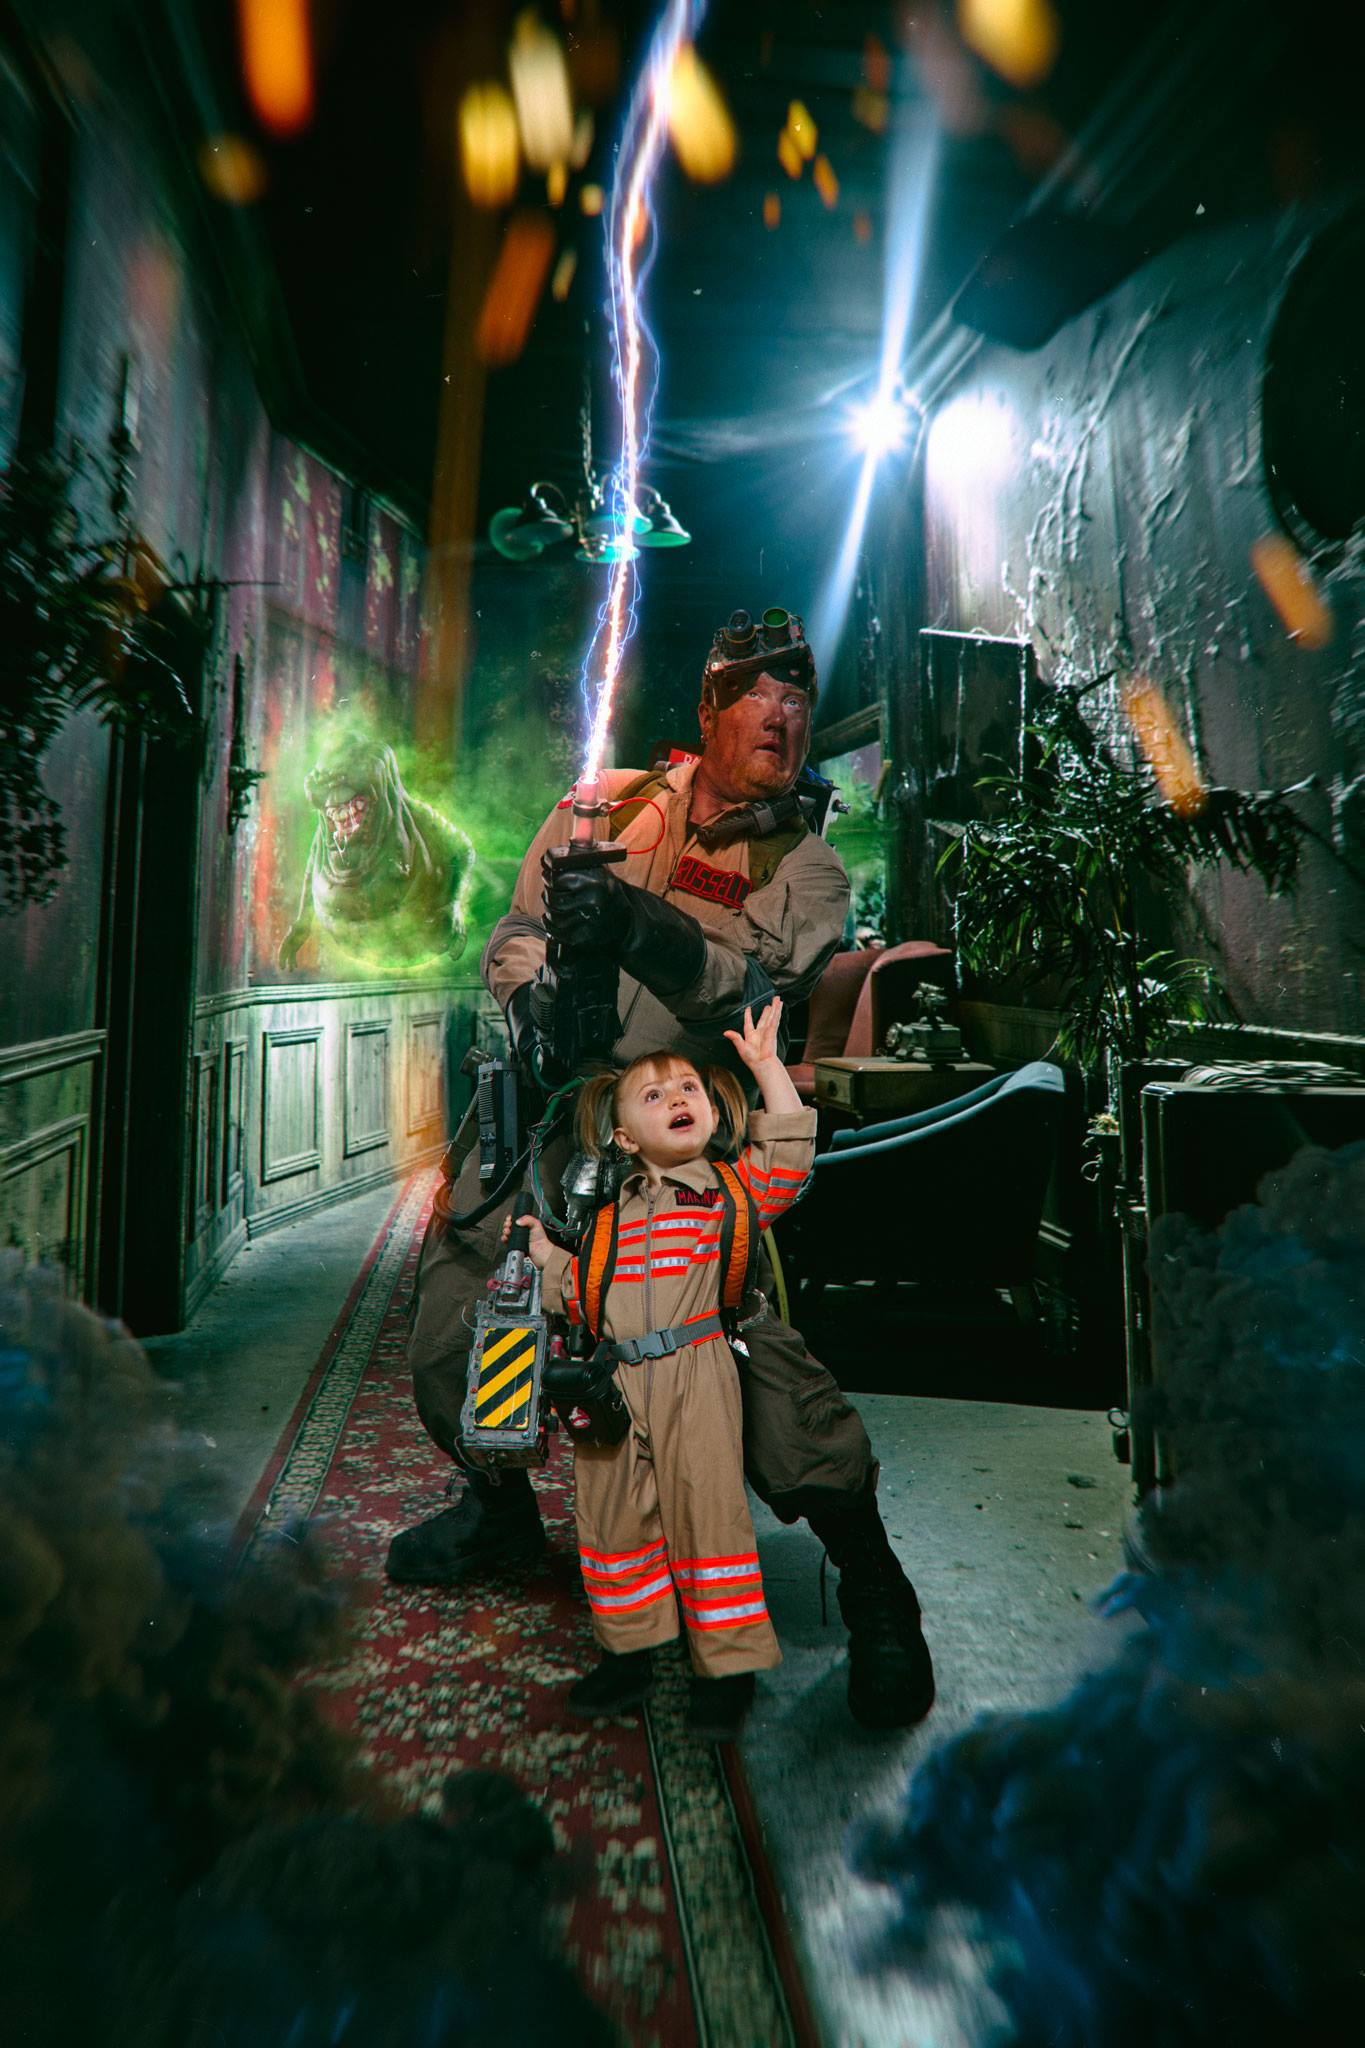 This is probably my favorite image of 2016 due to the fact that it meant the world to him to finally become real ghostbusters with his daughter! - Terrence W. Blanton